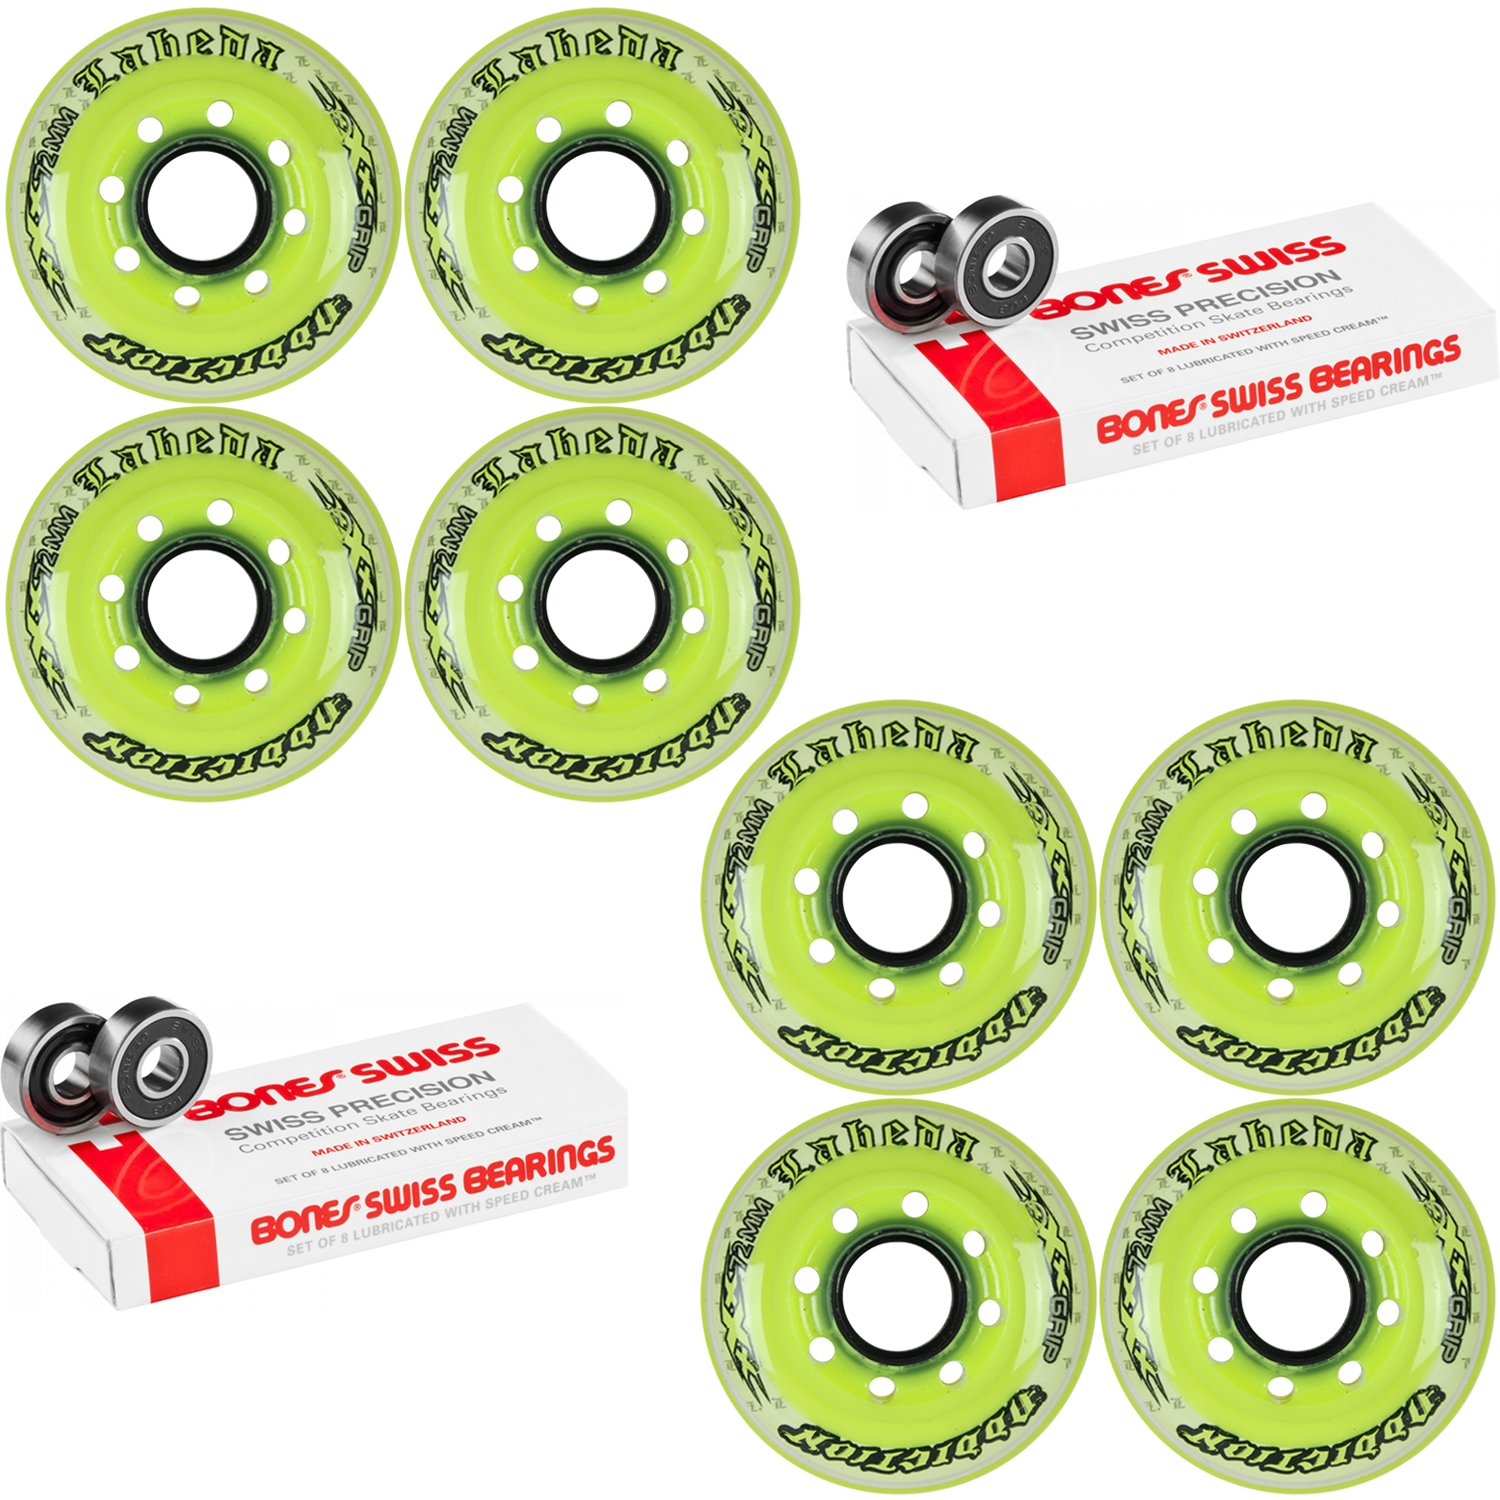 Labeda Addiction Wheels XXX Grip Yellow/White 72mm Roller Hockey x8 +Bones Swiss